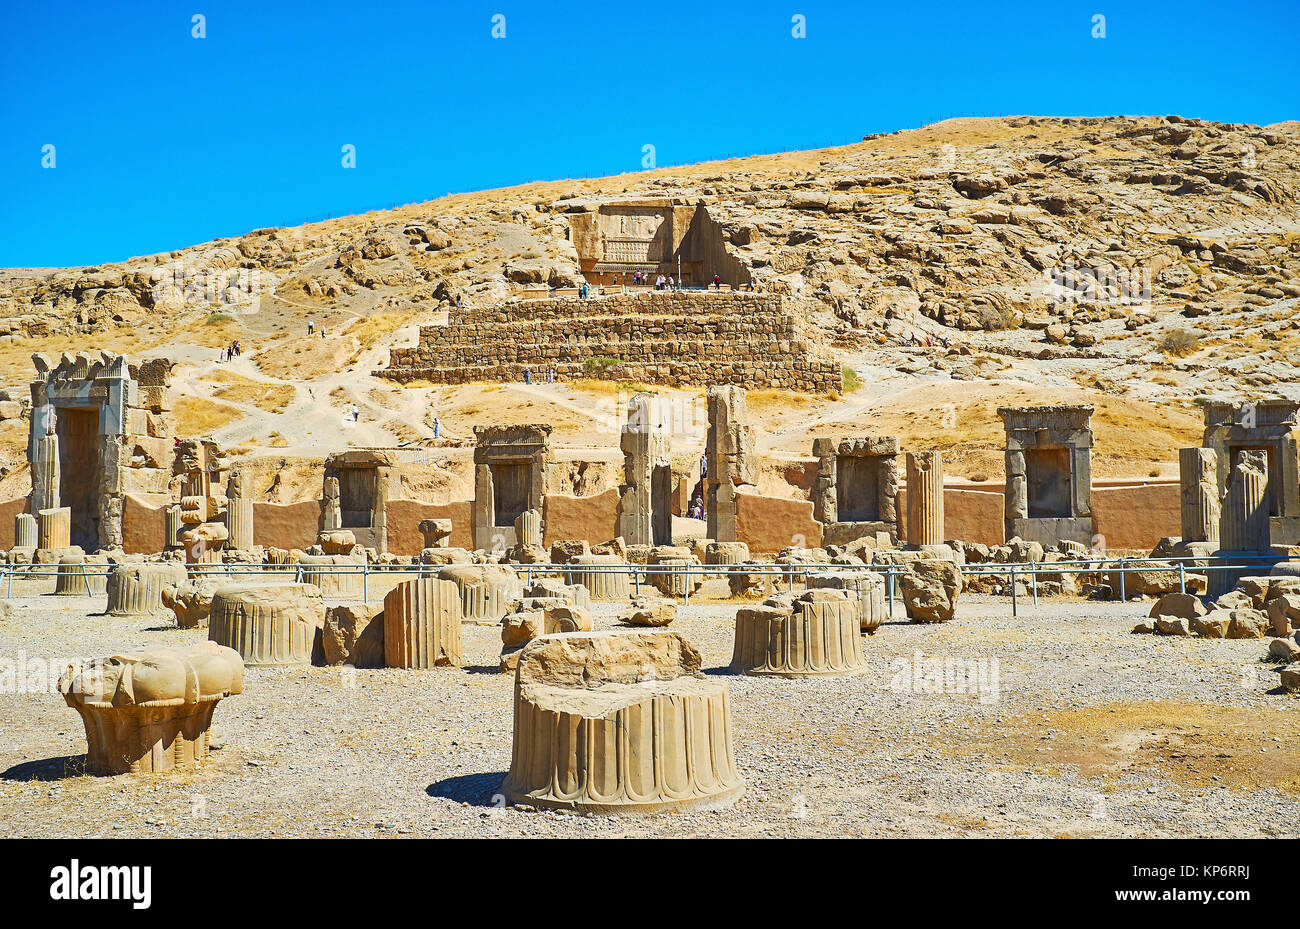 Persepolis archaeological site is interesting tourist location with many preserved antiquities, architectural objects, - Stock Image